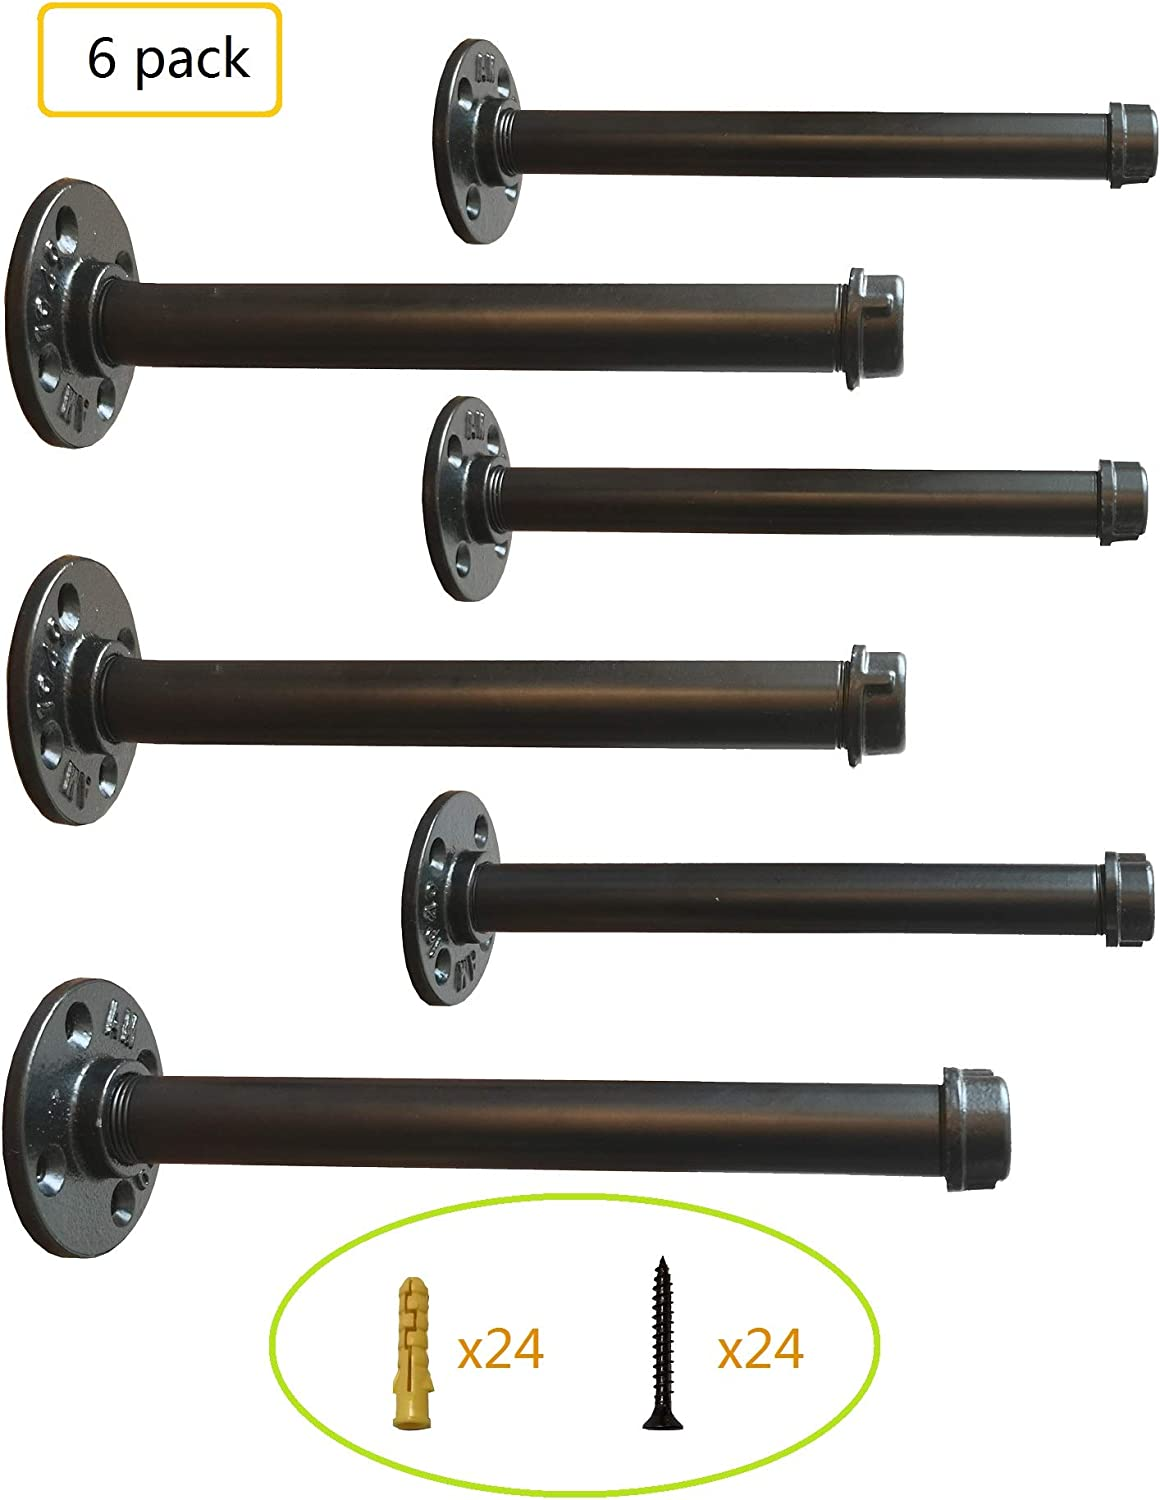 Industrial Black Iron Pipe Shelf Brackets 10 Inch Set of 6,Heavy Duty Industrial Pipe Decor Floating Shelf Brackets,Garment Rack, Coated Finish.Hardware Included